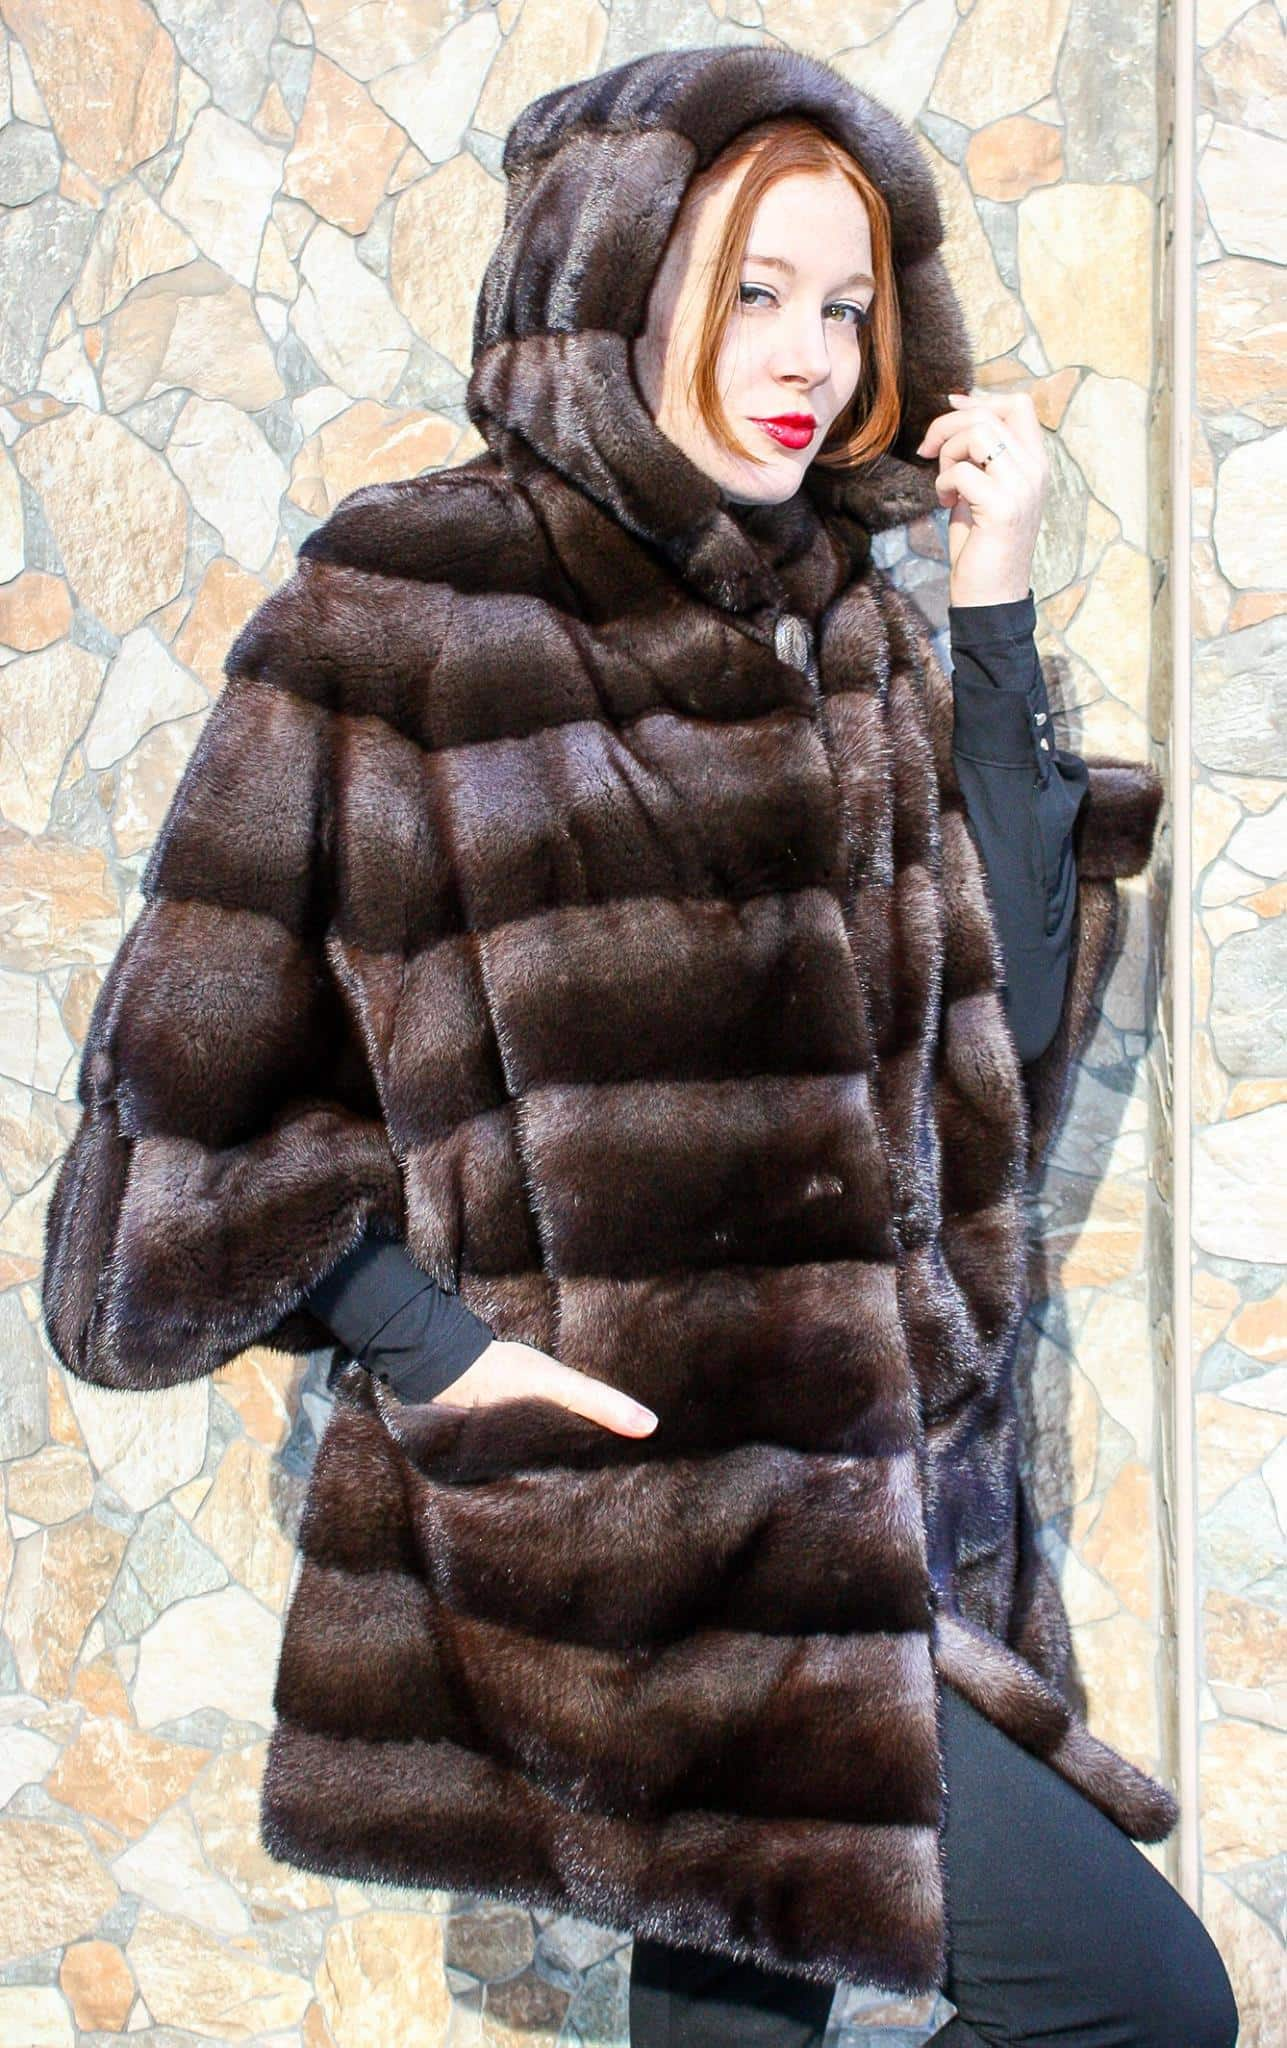 Hooded Casper Demi Mink Coat, Now only $4495 on Clearance at Marc Kaufman Furs www.kaufmanfurs.com